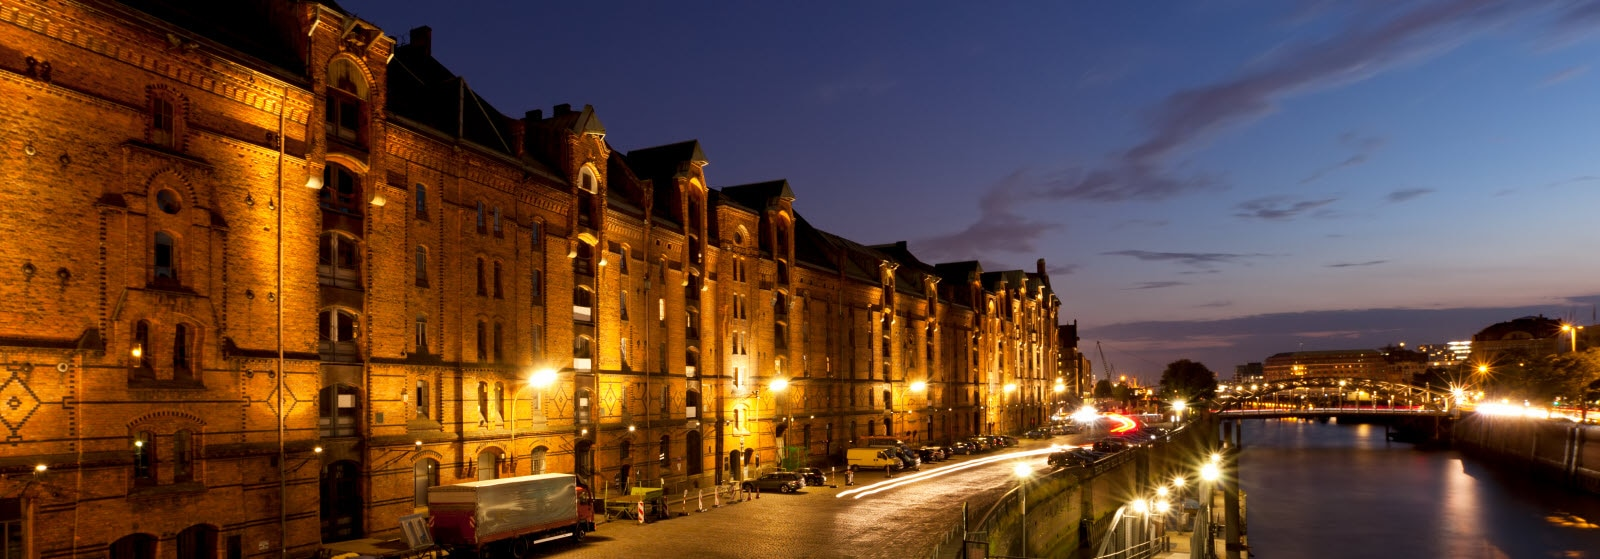 Hamburg, ancient warehouse district Speicherstadt at dusk. Photo: Mostphotos.com